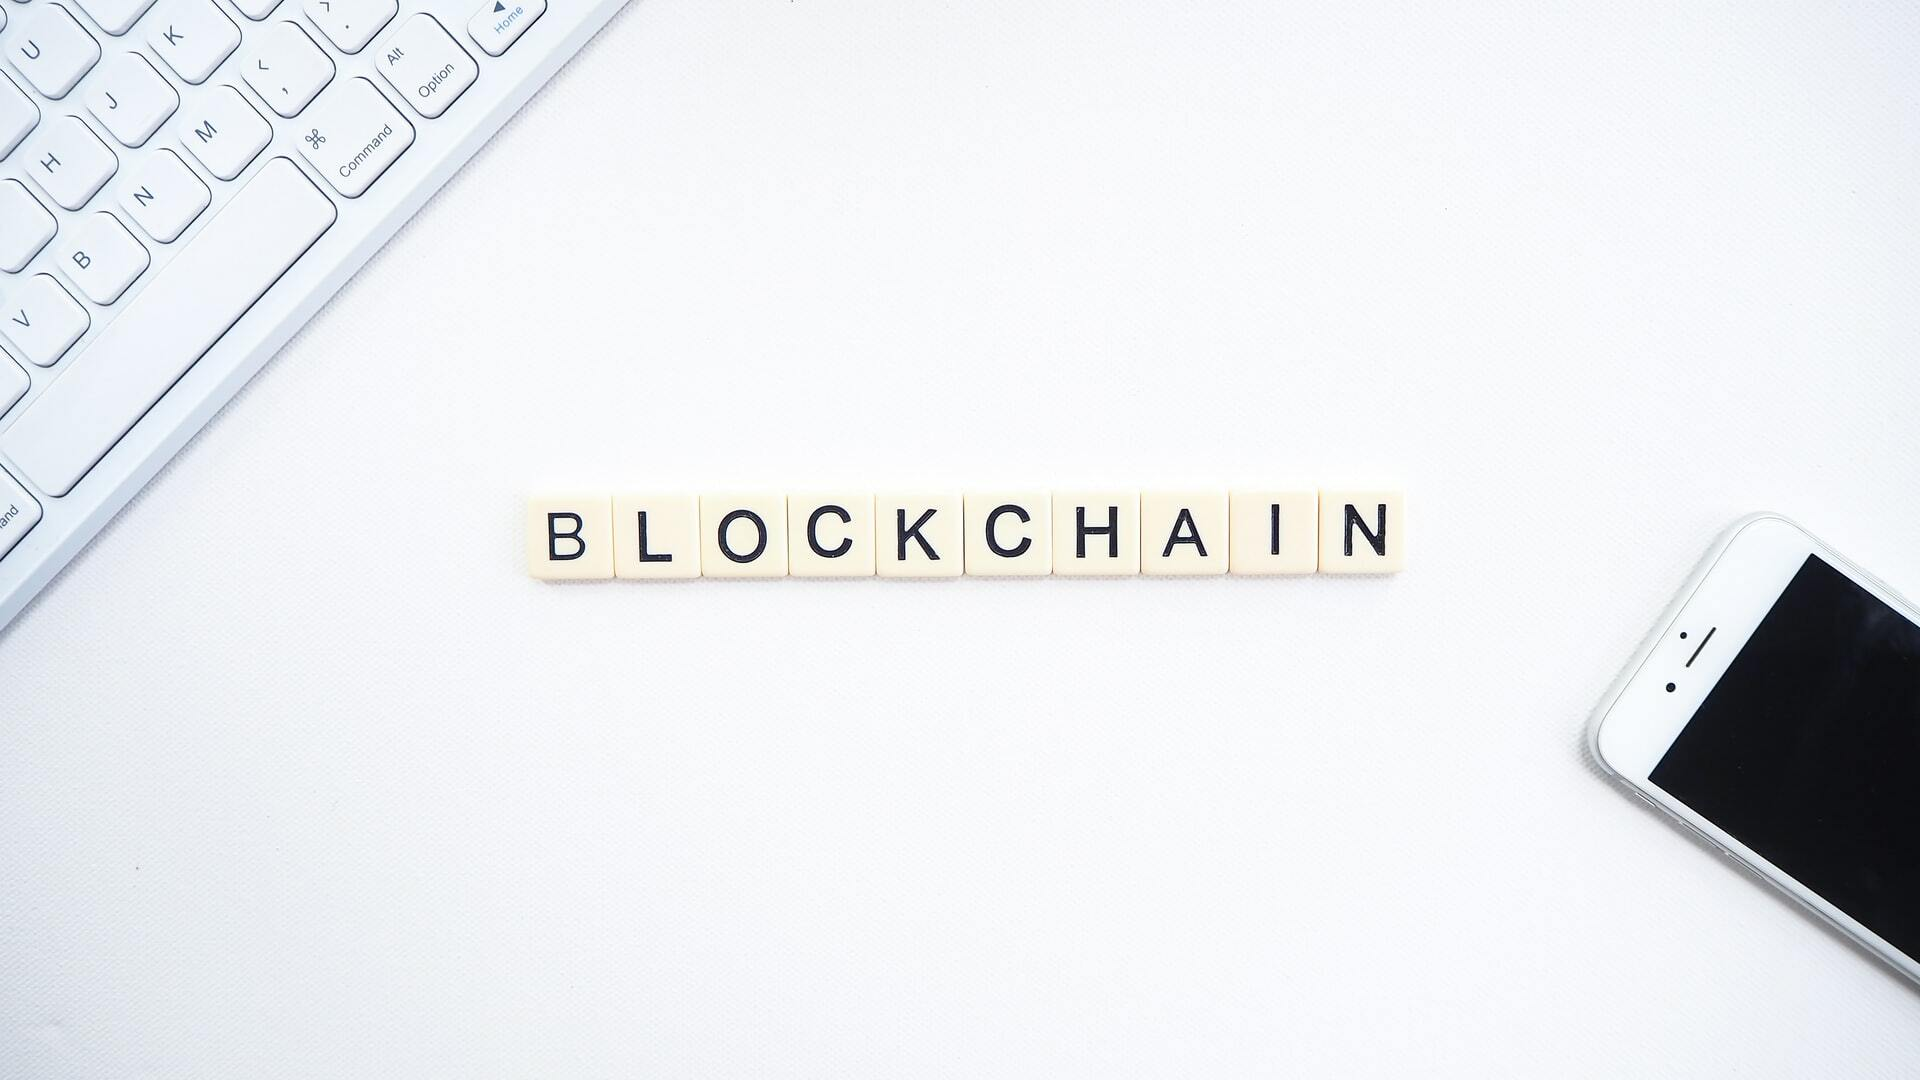 How to Leverage Blockchain for Enterprise Applications